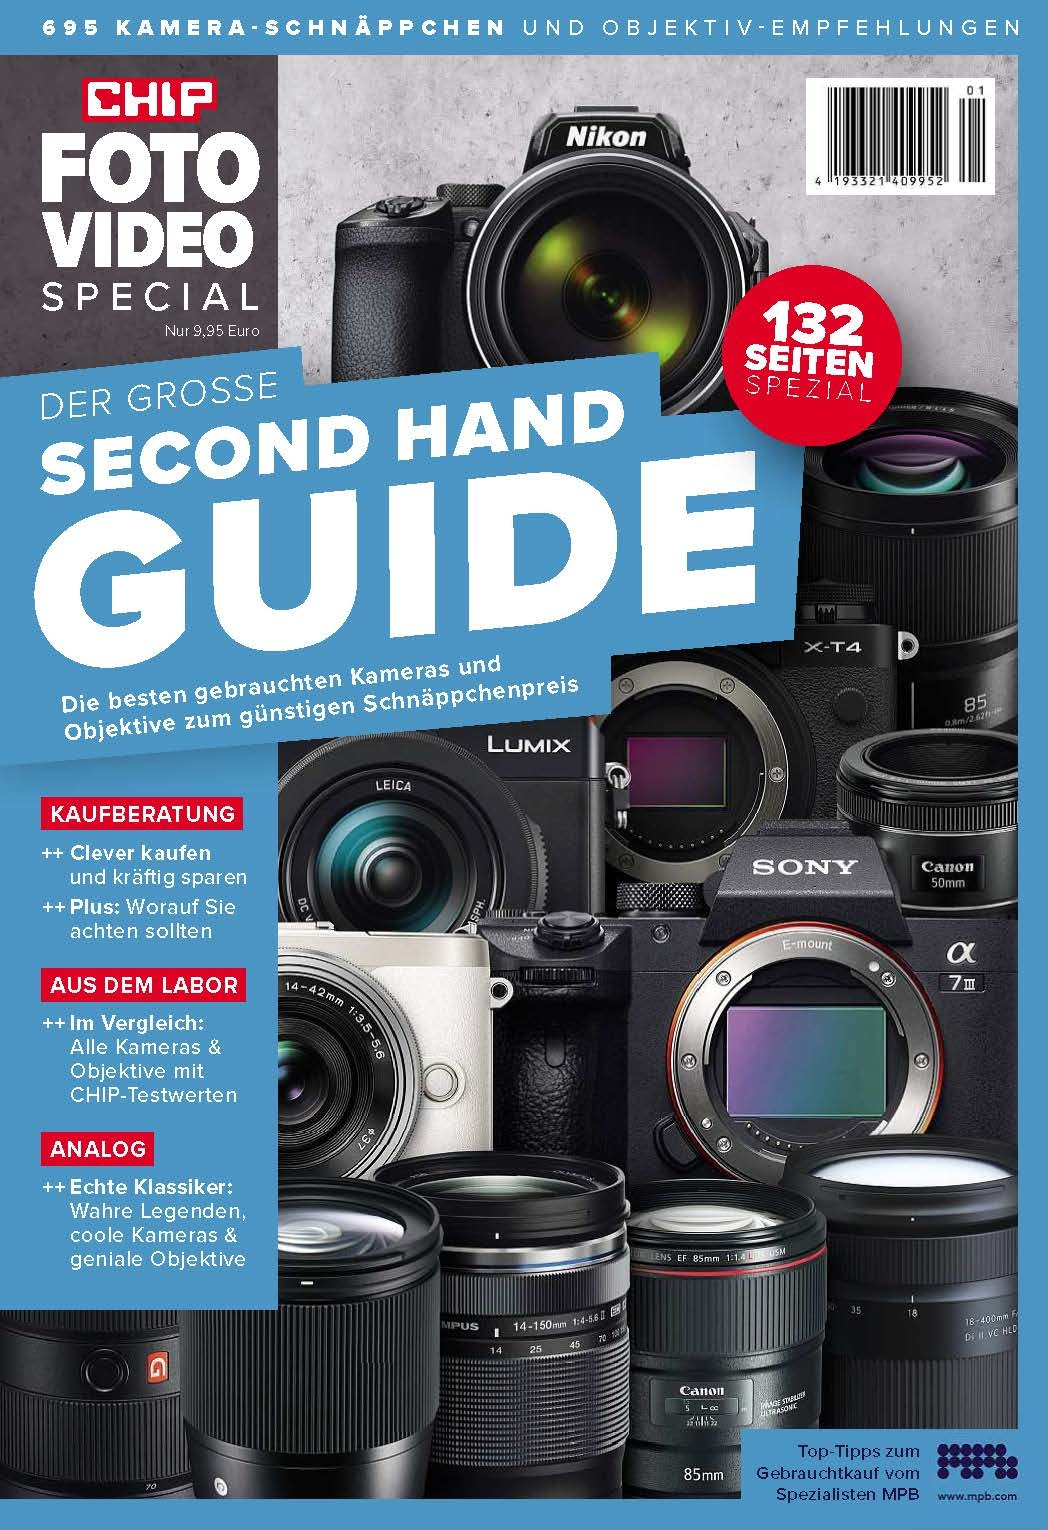 CHIP CHIP FOTO-VIDEO –  Special – Second Hand Guide